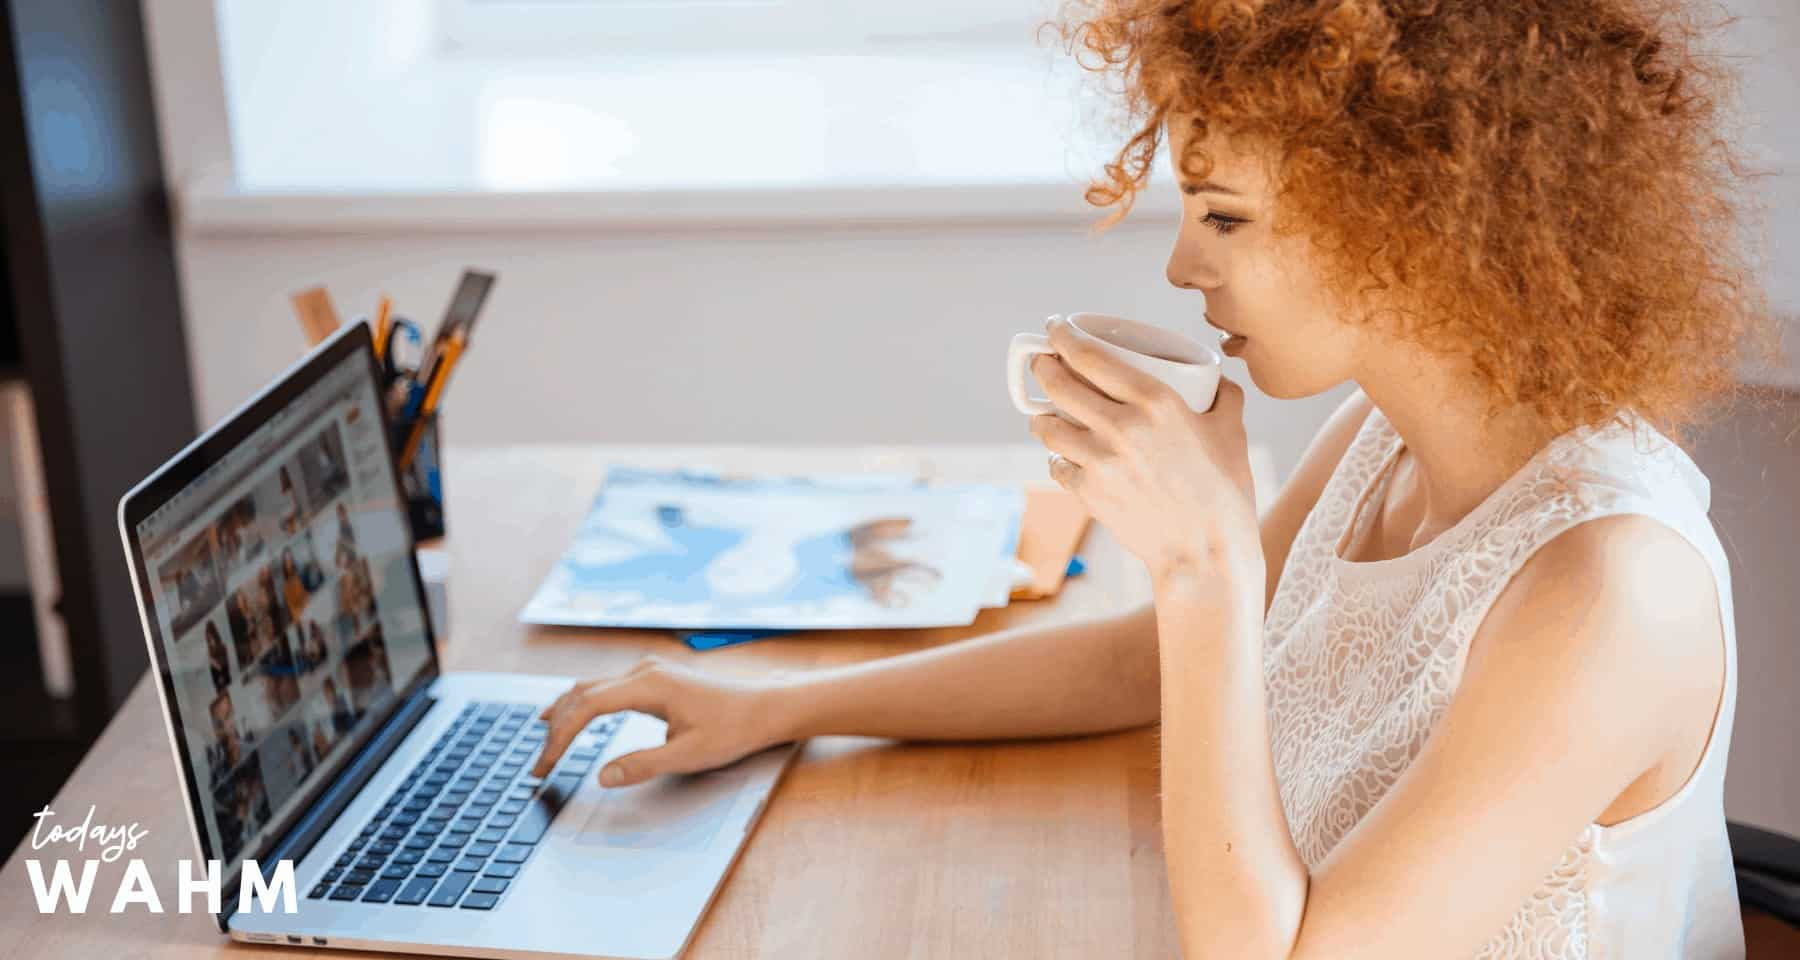 5 Steps for Starting Your Own Blog